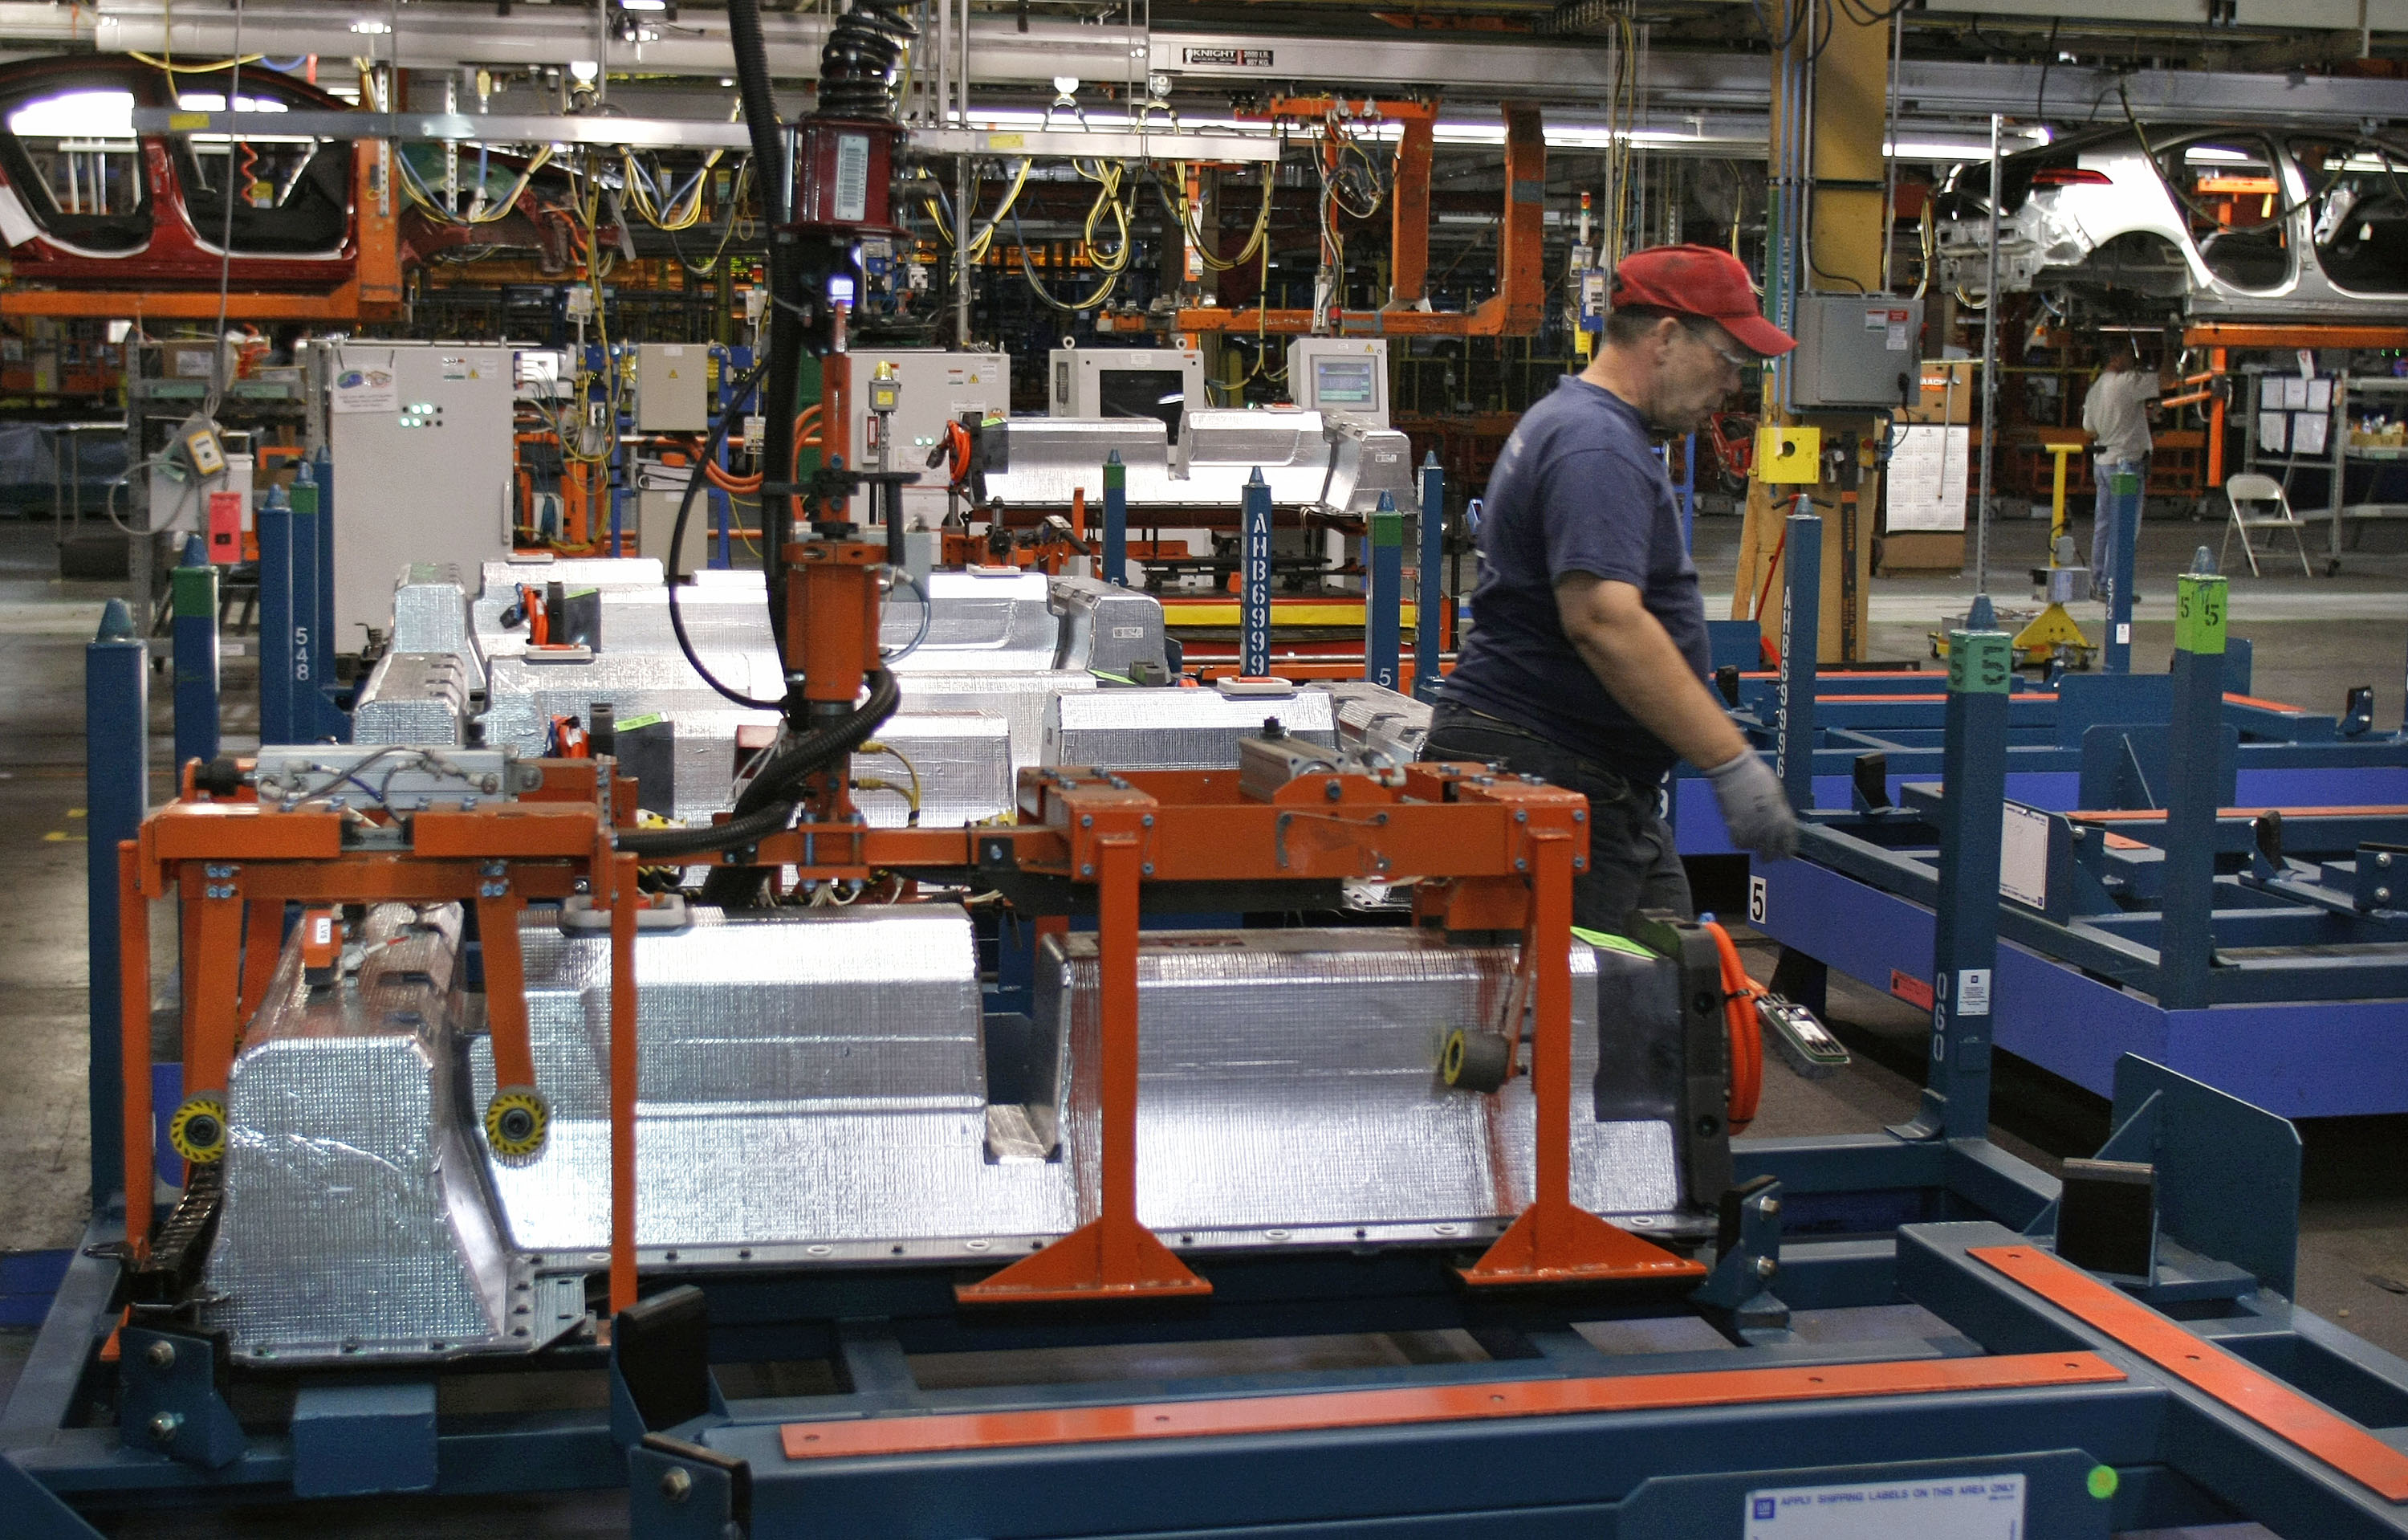 U.S. Manufacturers Say Skills Gap Could Compromise